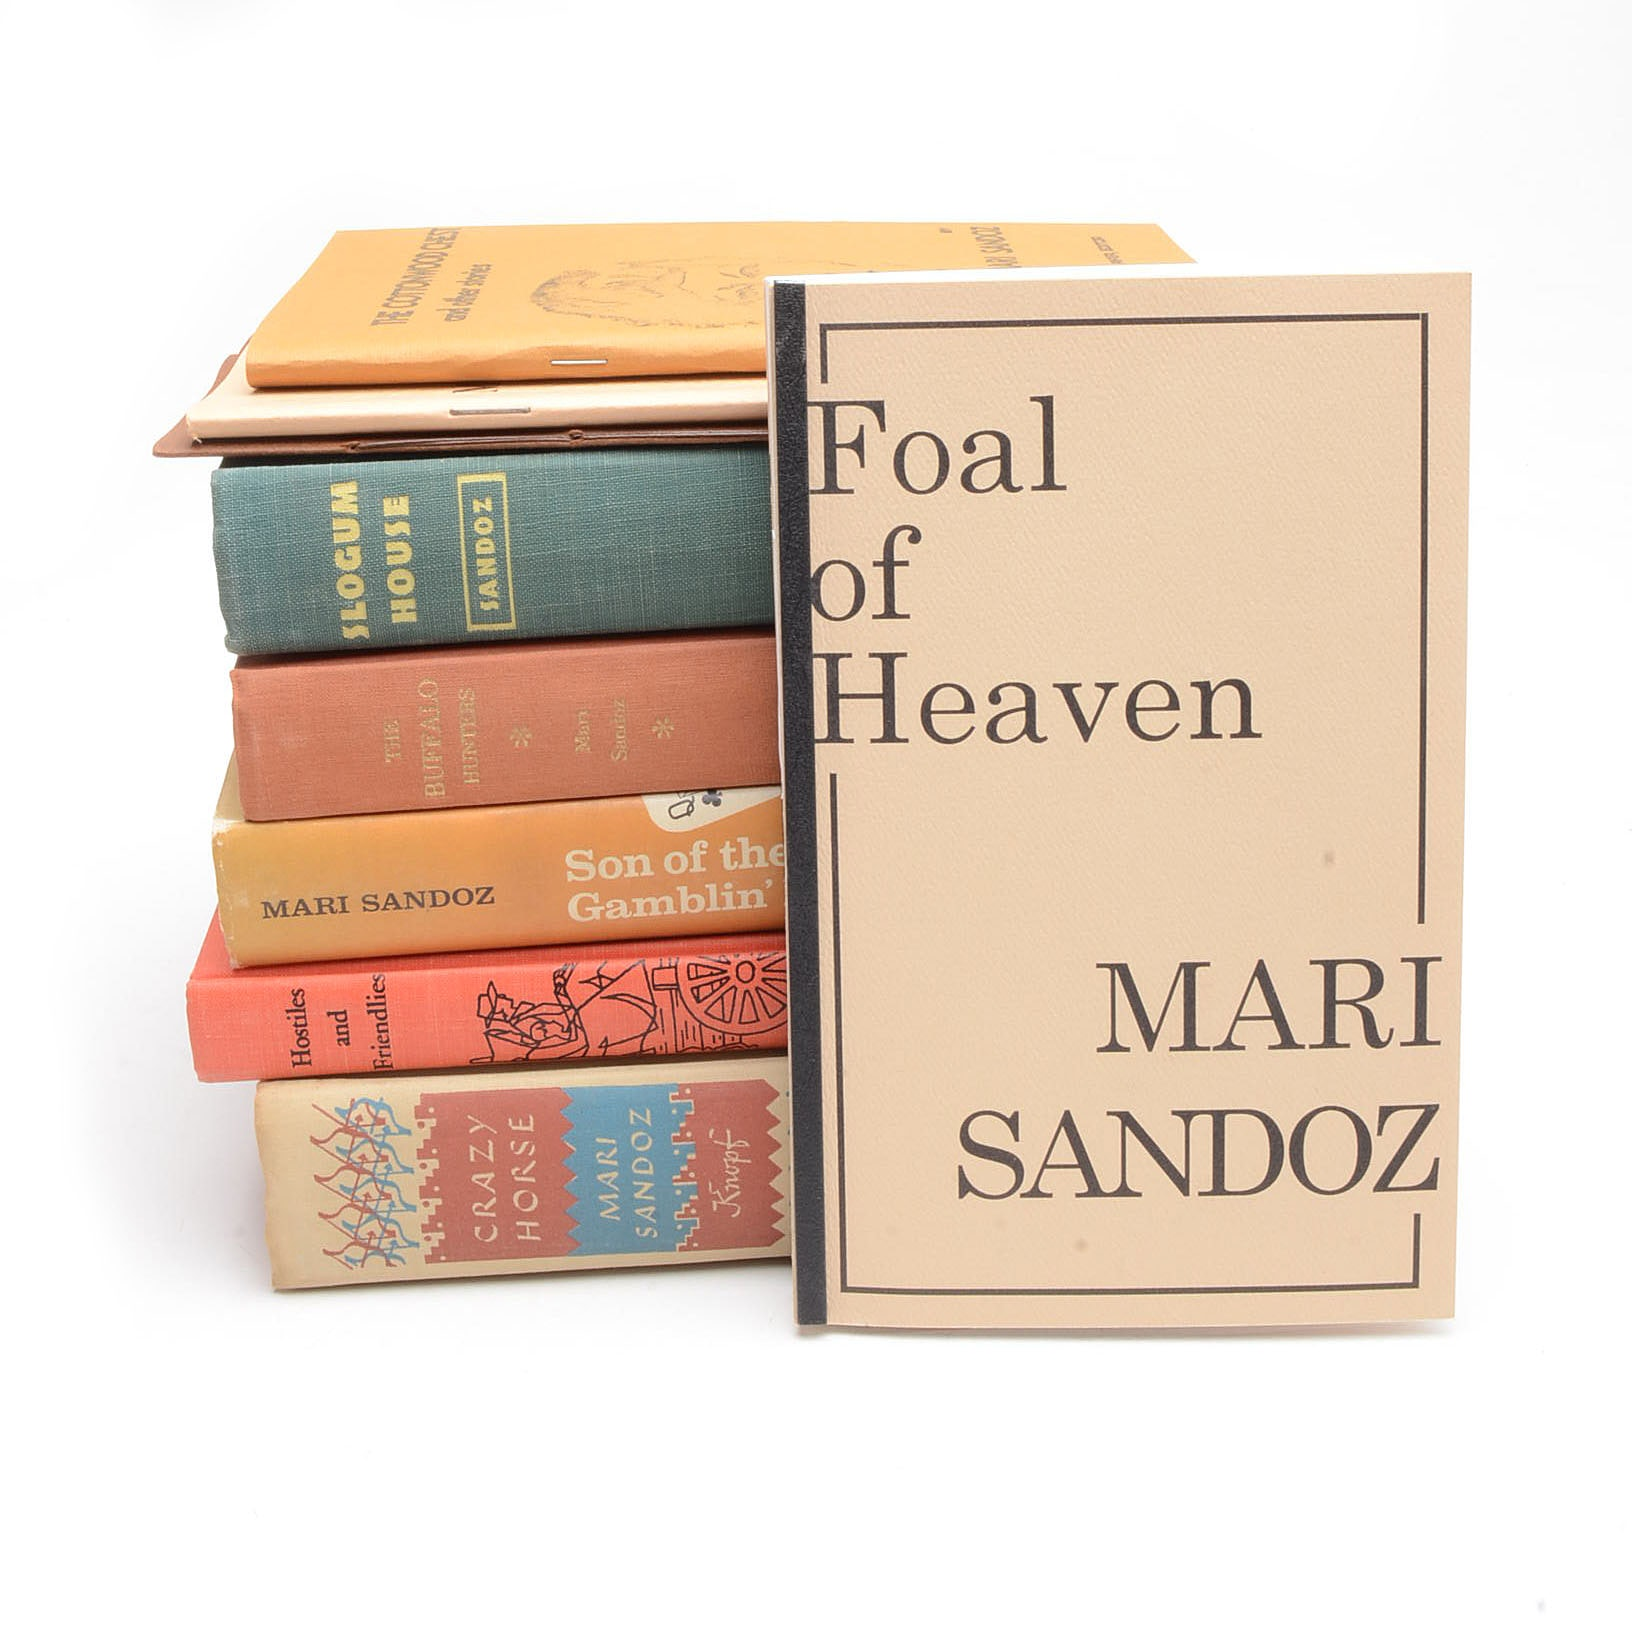 Collection of Works by Mari Sandoz